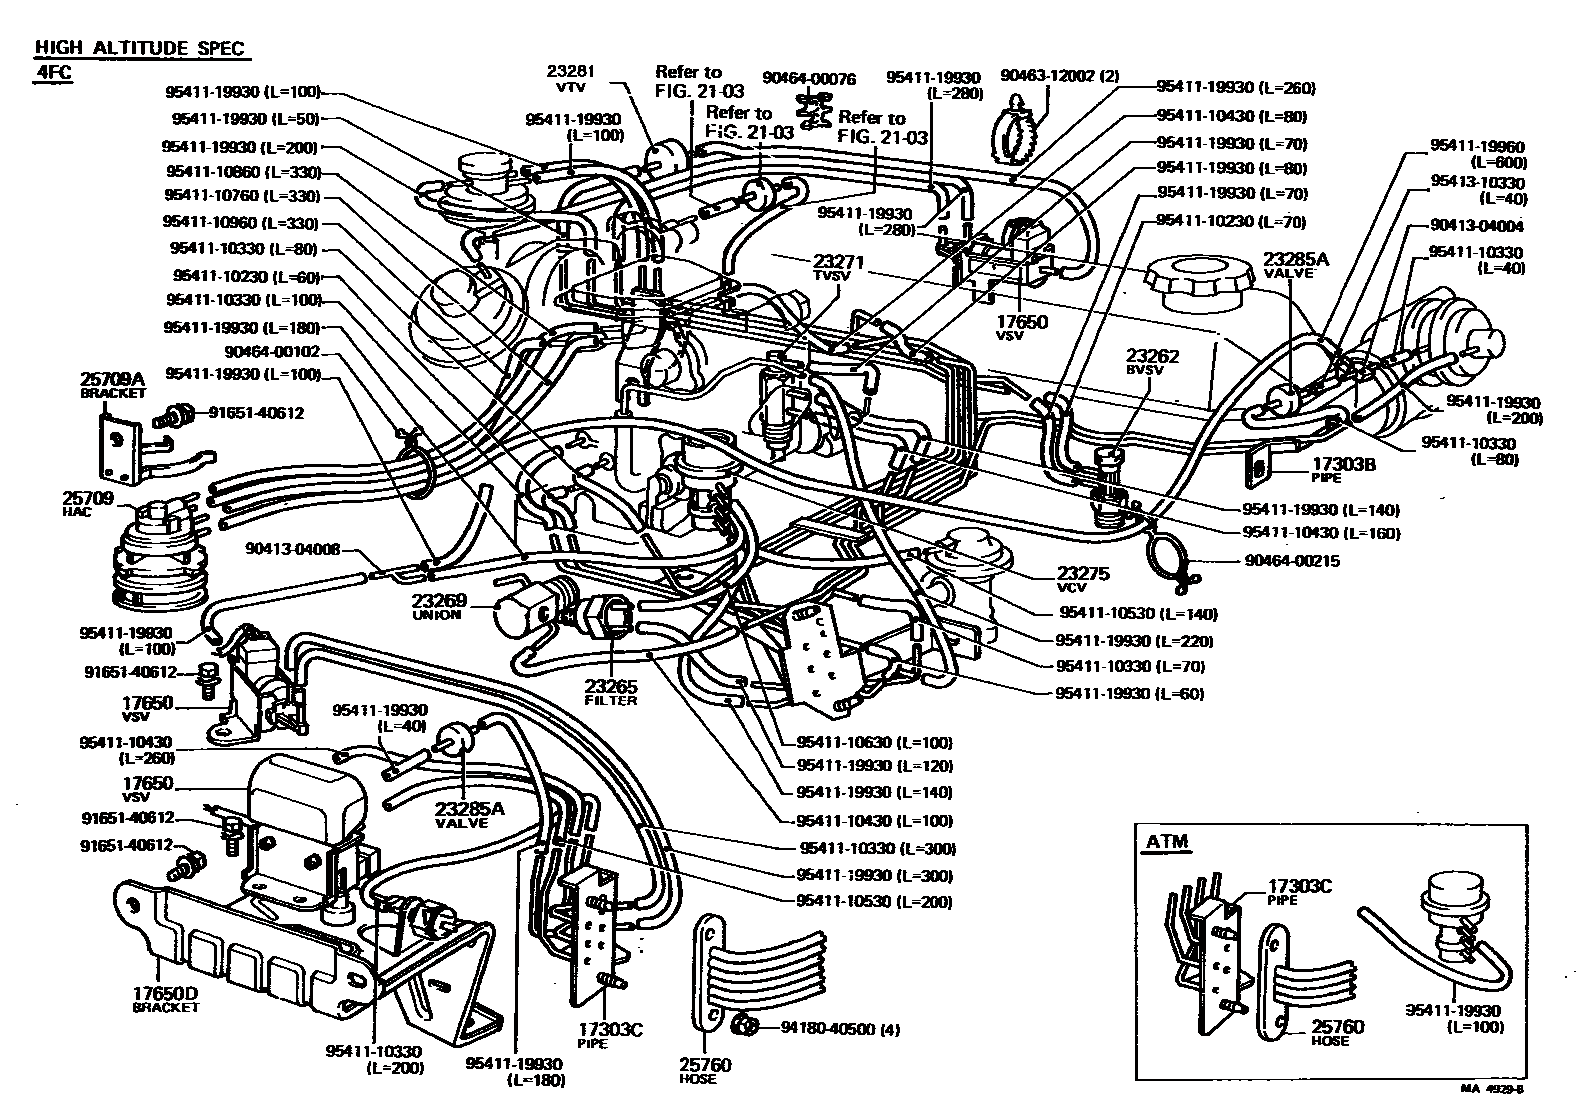 hight resolution of need a 1981 ca vacuum diagram fsm download pic is ideal  [ 1576 x 1116 Pixel ]